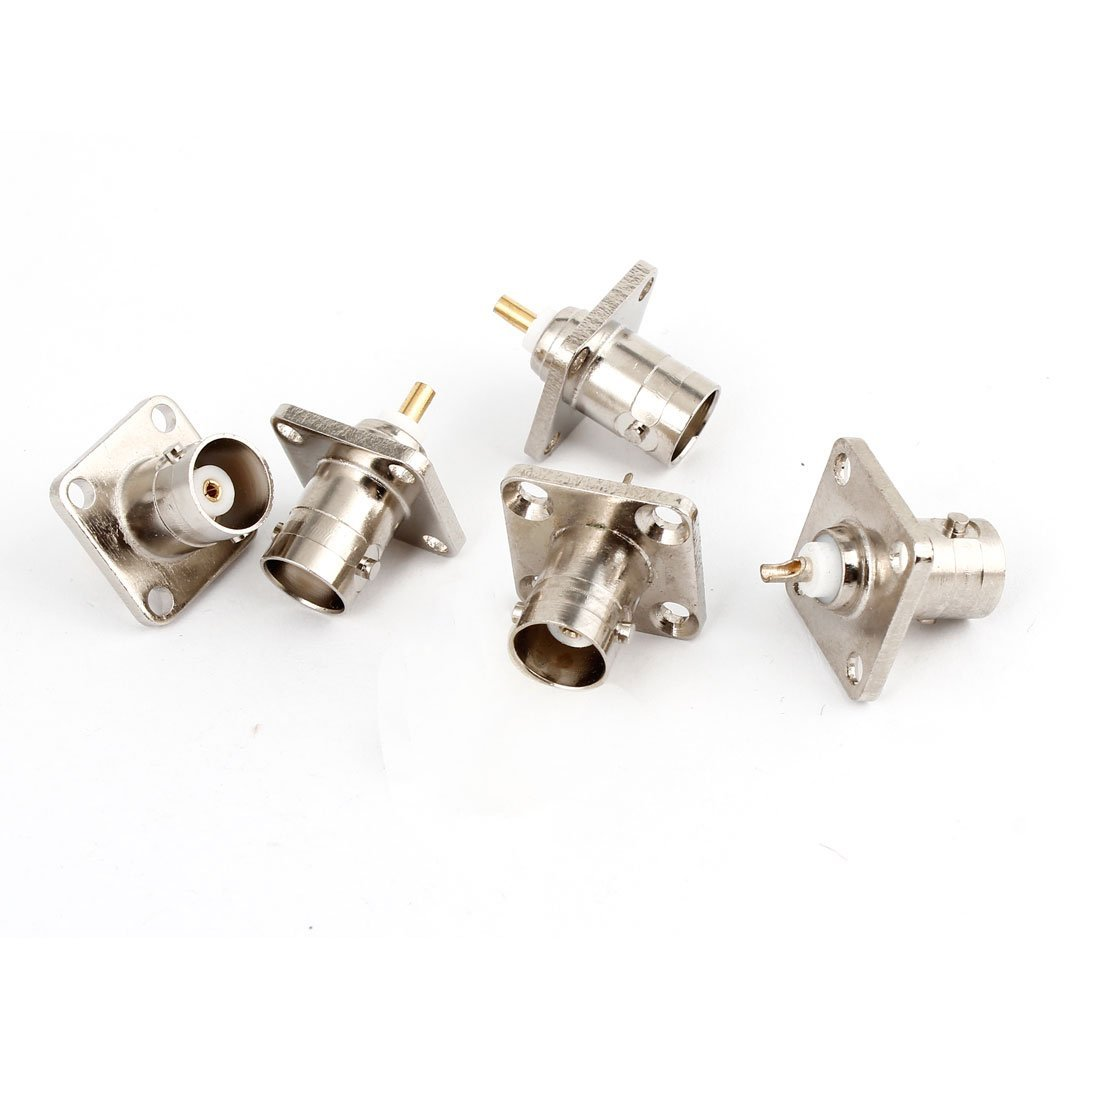 uxcell 5pcs BNC Female Jack 4 Hole Flange Panel Chassis Mount Solder Adapter